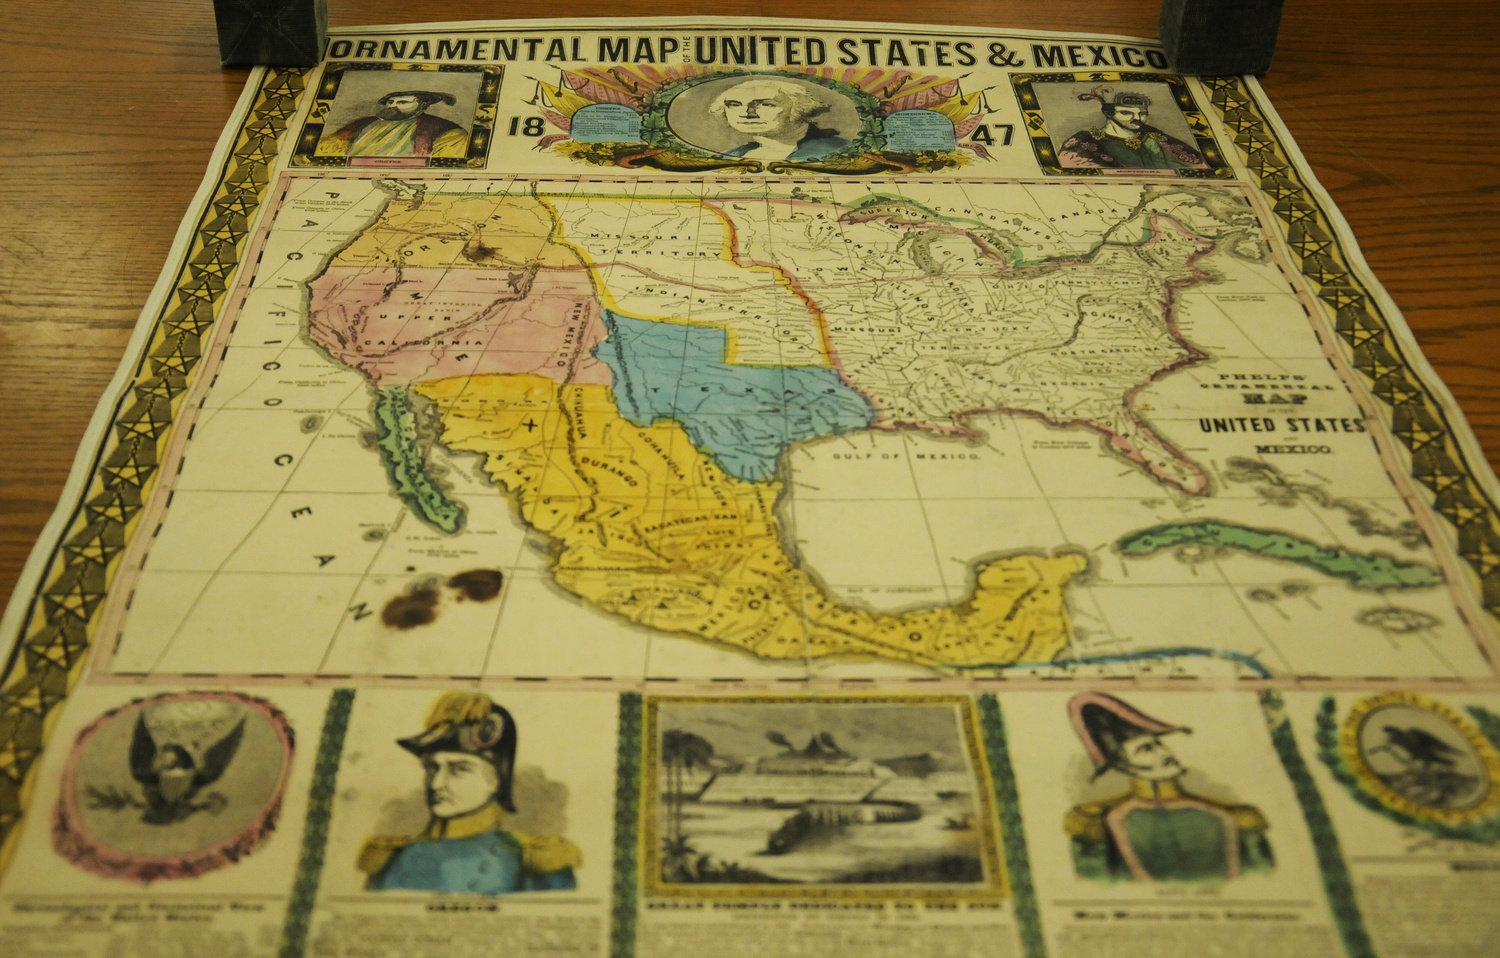 A map depicting the Mexican-American War, featuring important figures in the war, housed in the Harvard Map Collection in the Pusey Library.